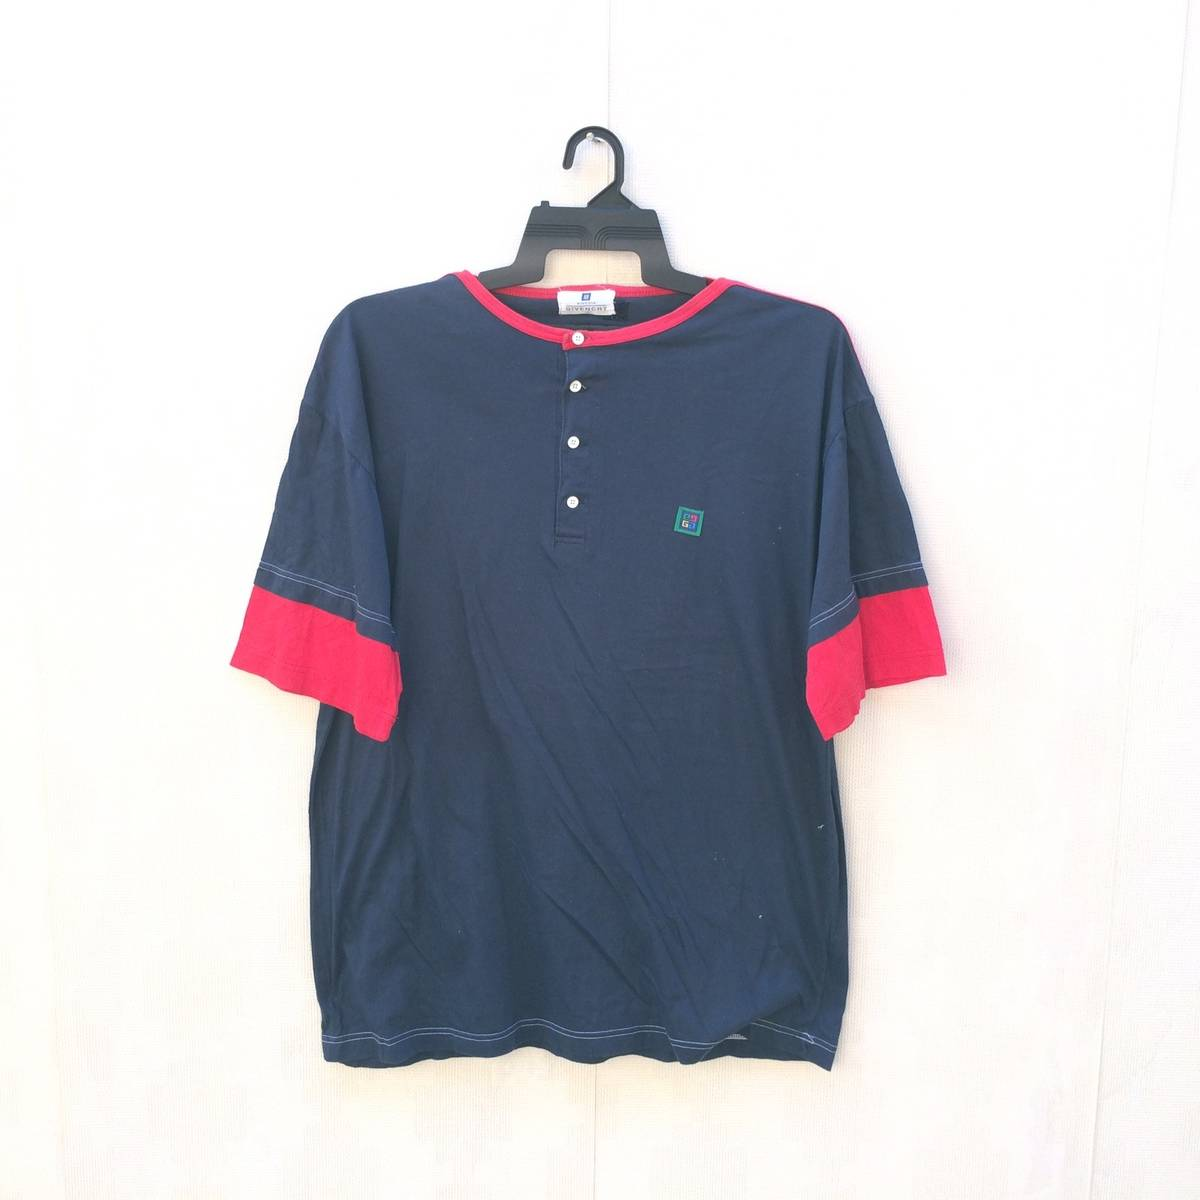 Givenchy vintage givenchy t shirt size l short sleeve t for Givenchy t shirts for sale